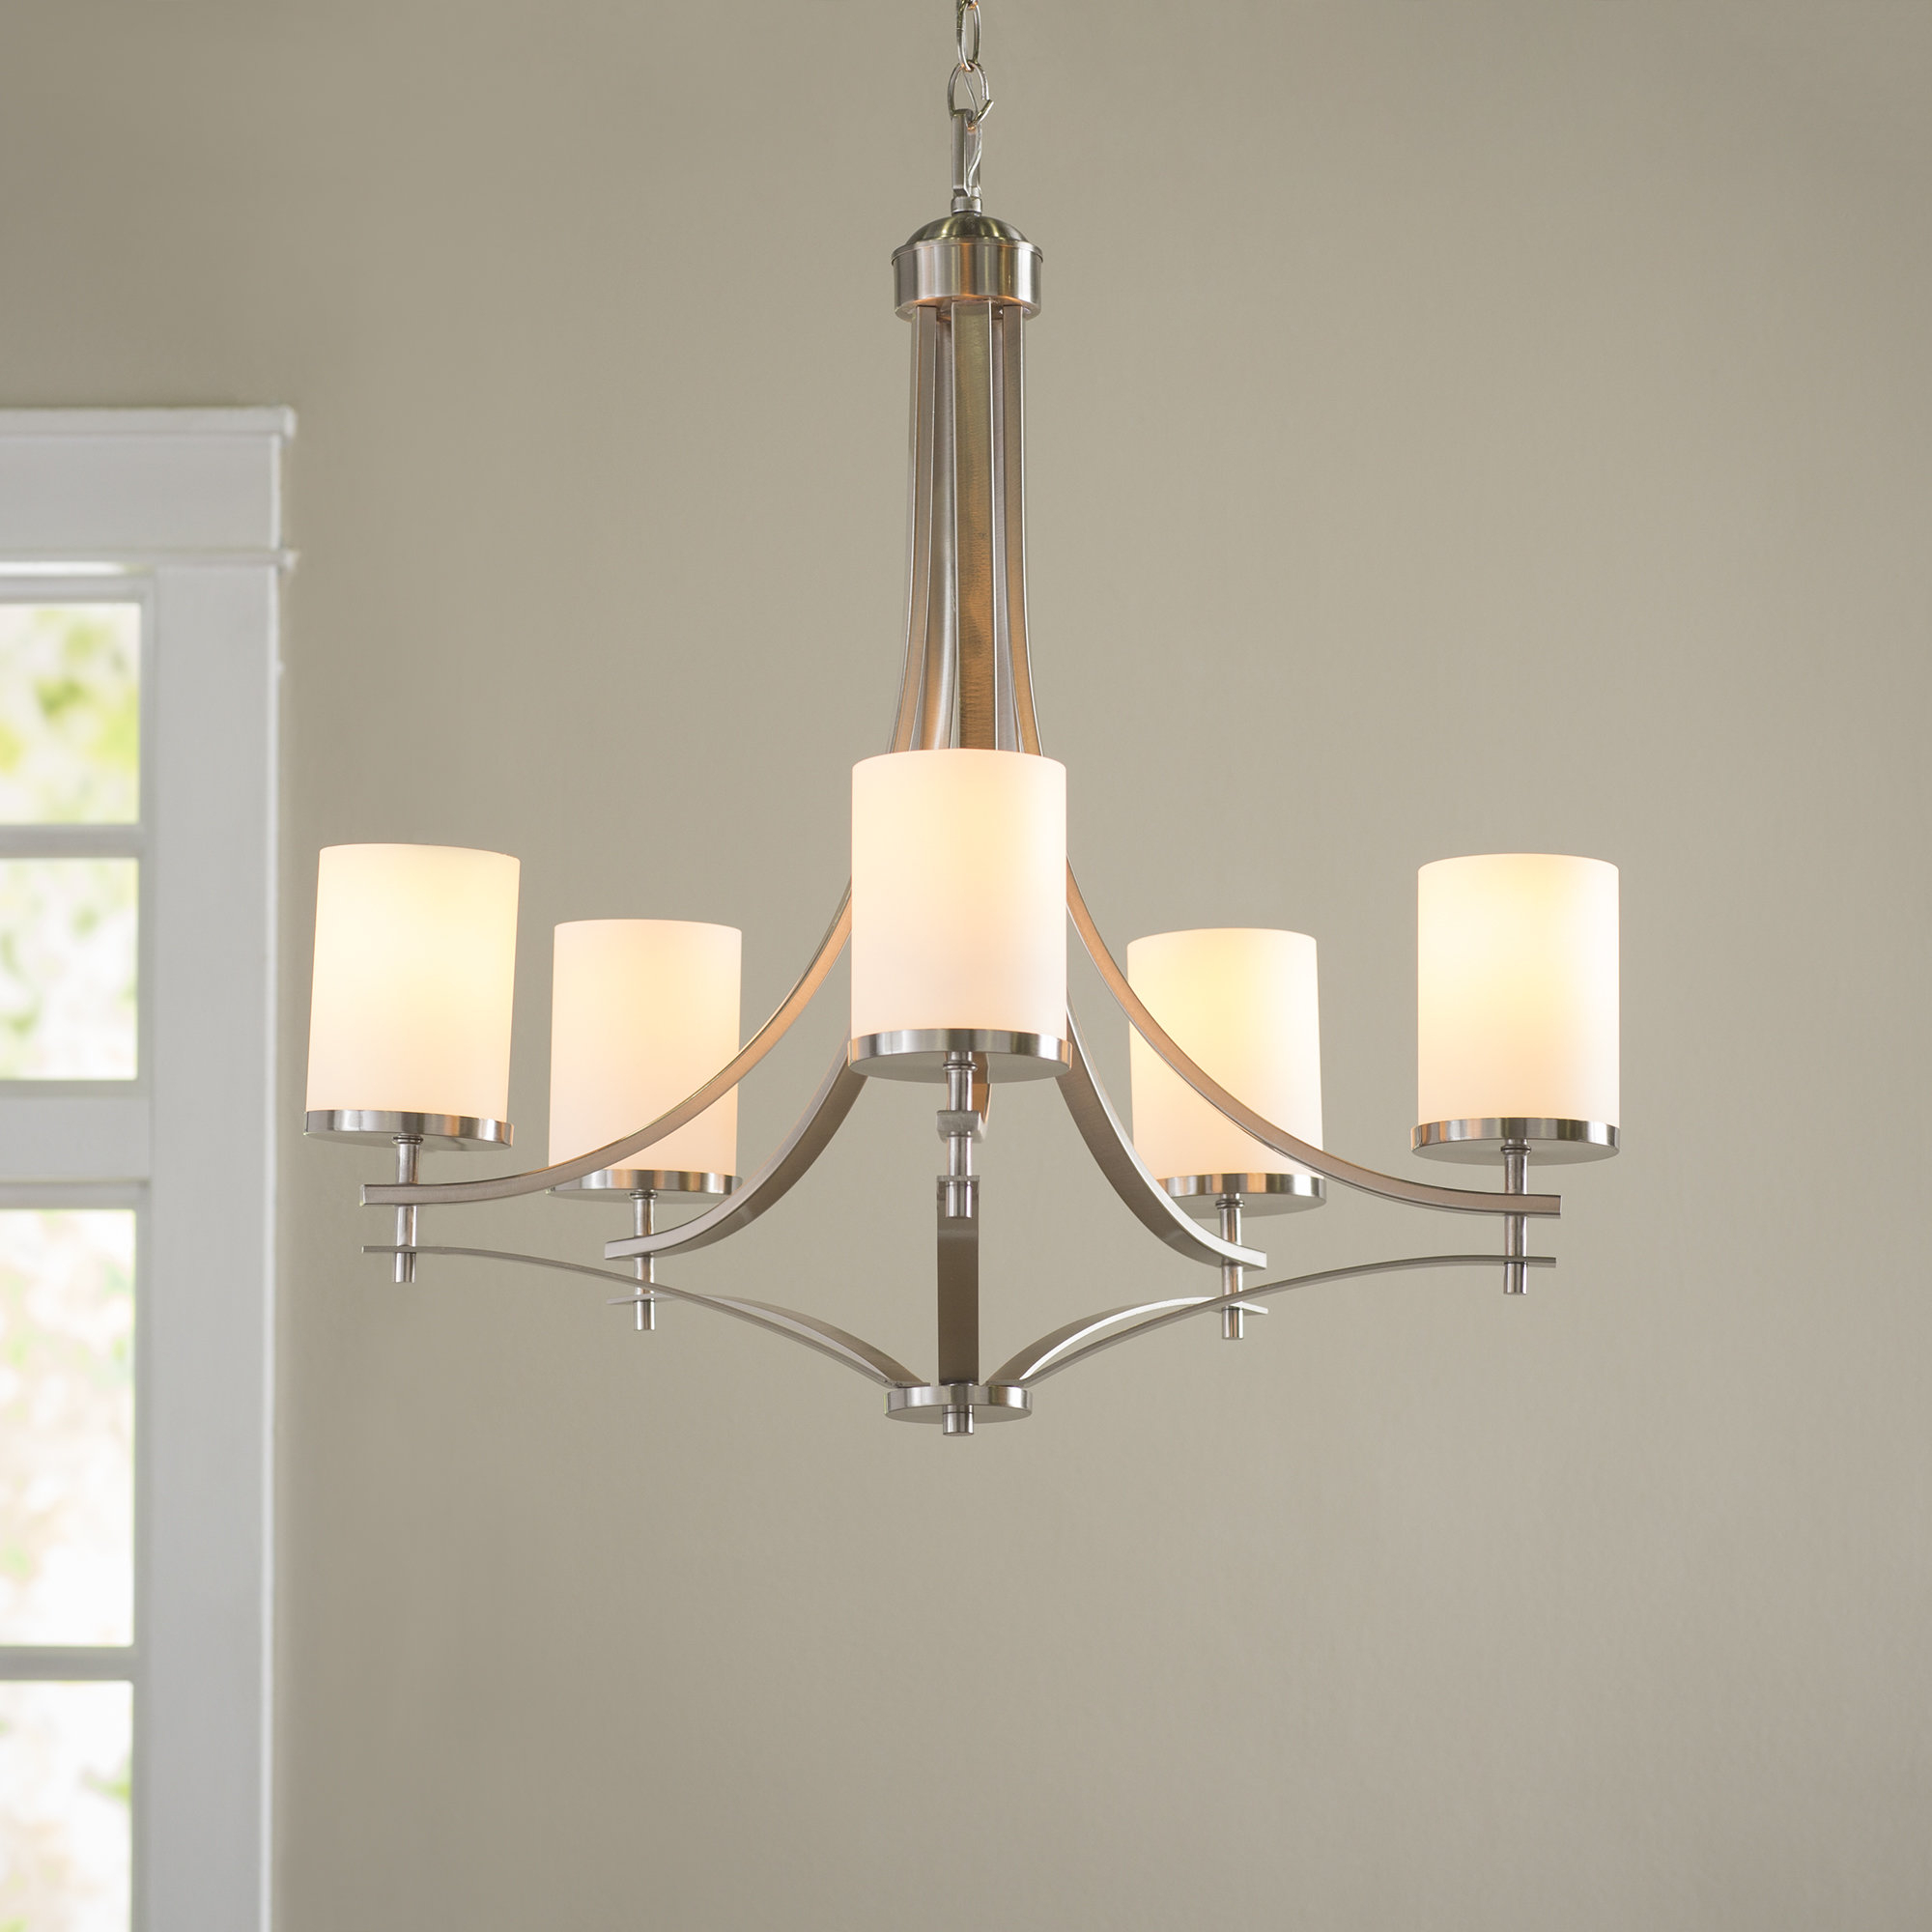 Agnes 5 Light Shaded Chandelier Pertaining To Famous Newent 5 Light Shaded Chandeliers (View 1 of 25)